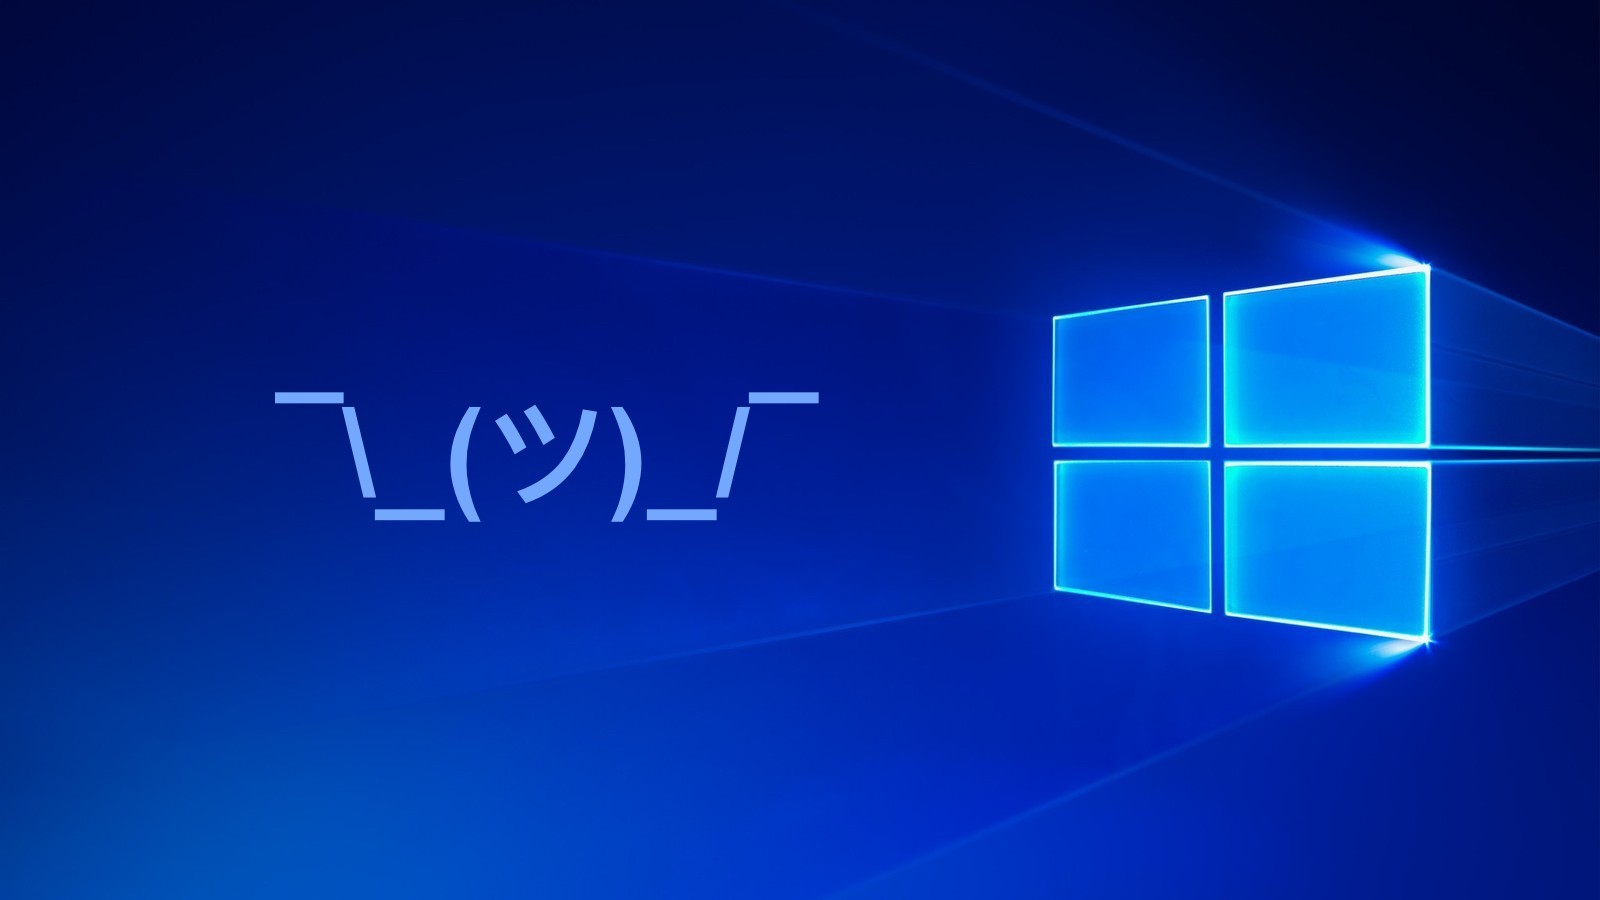 Windows 10 Users Report Bugs & BSOD After Installing Latest Security